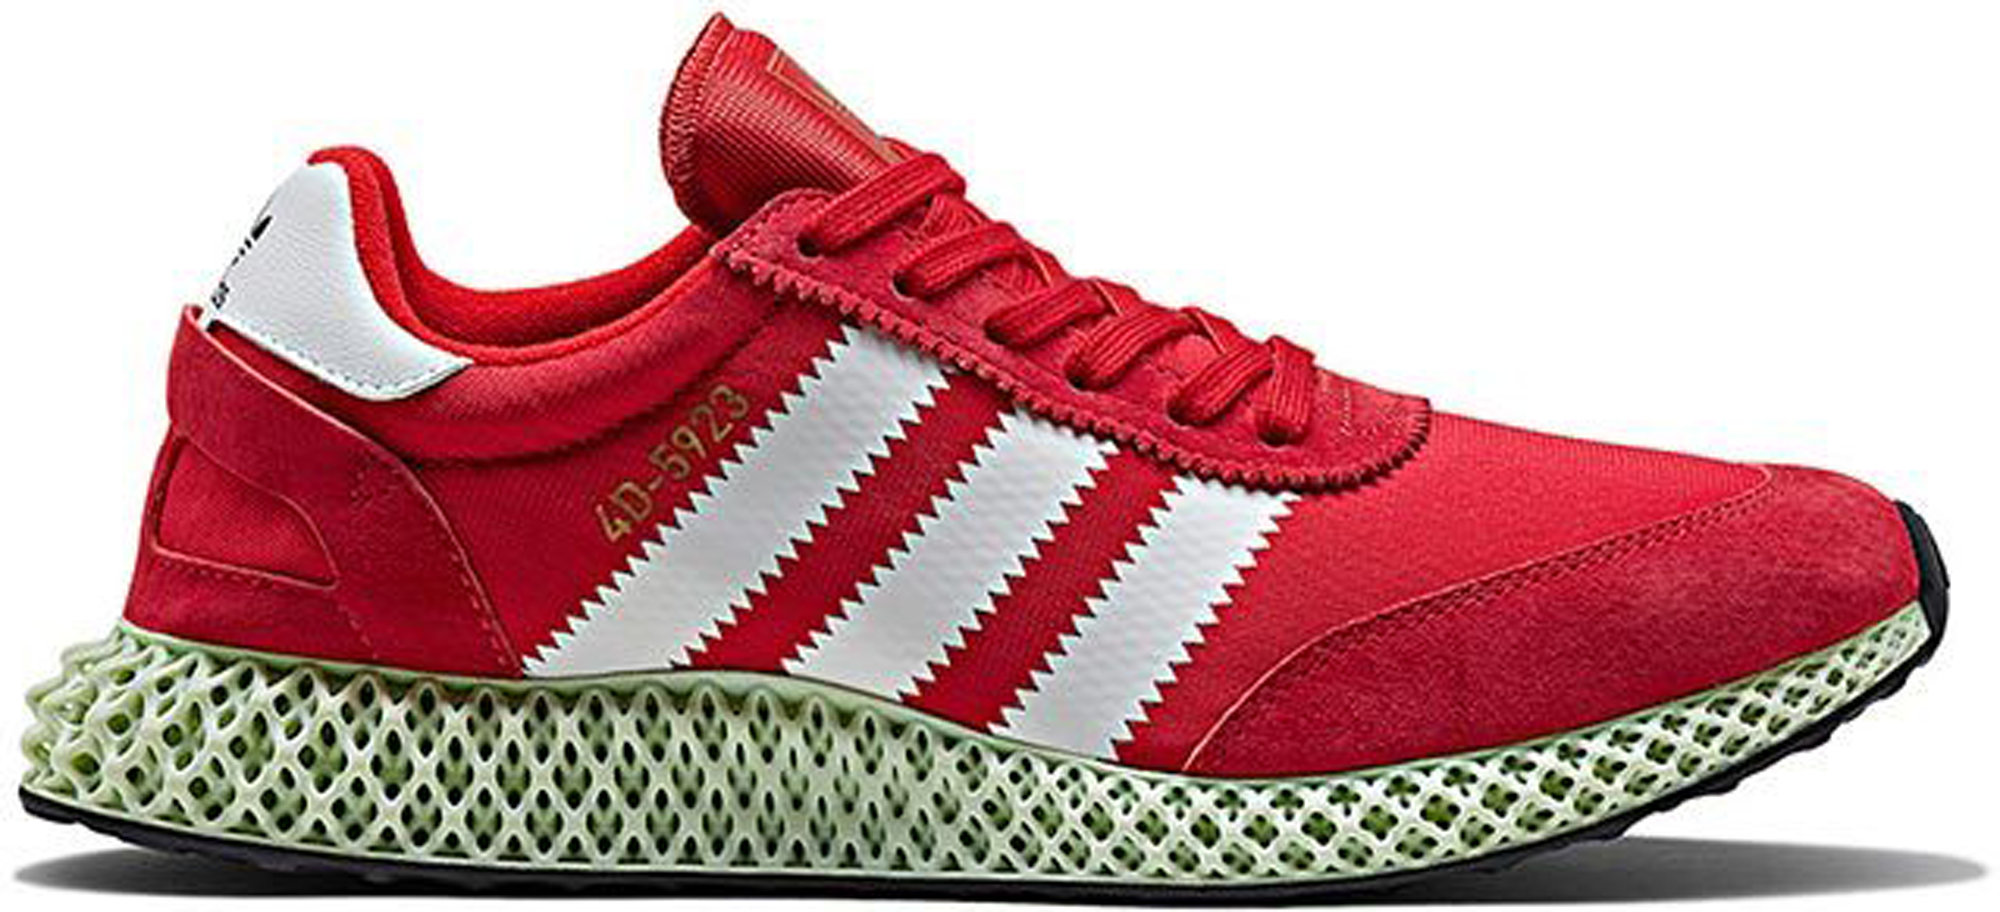 adidas 4D-5923 Never Made Pack